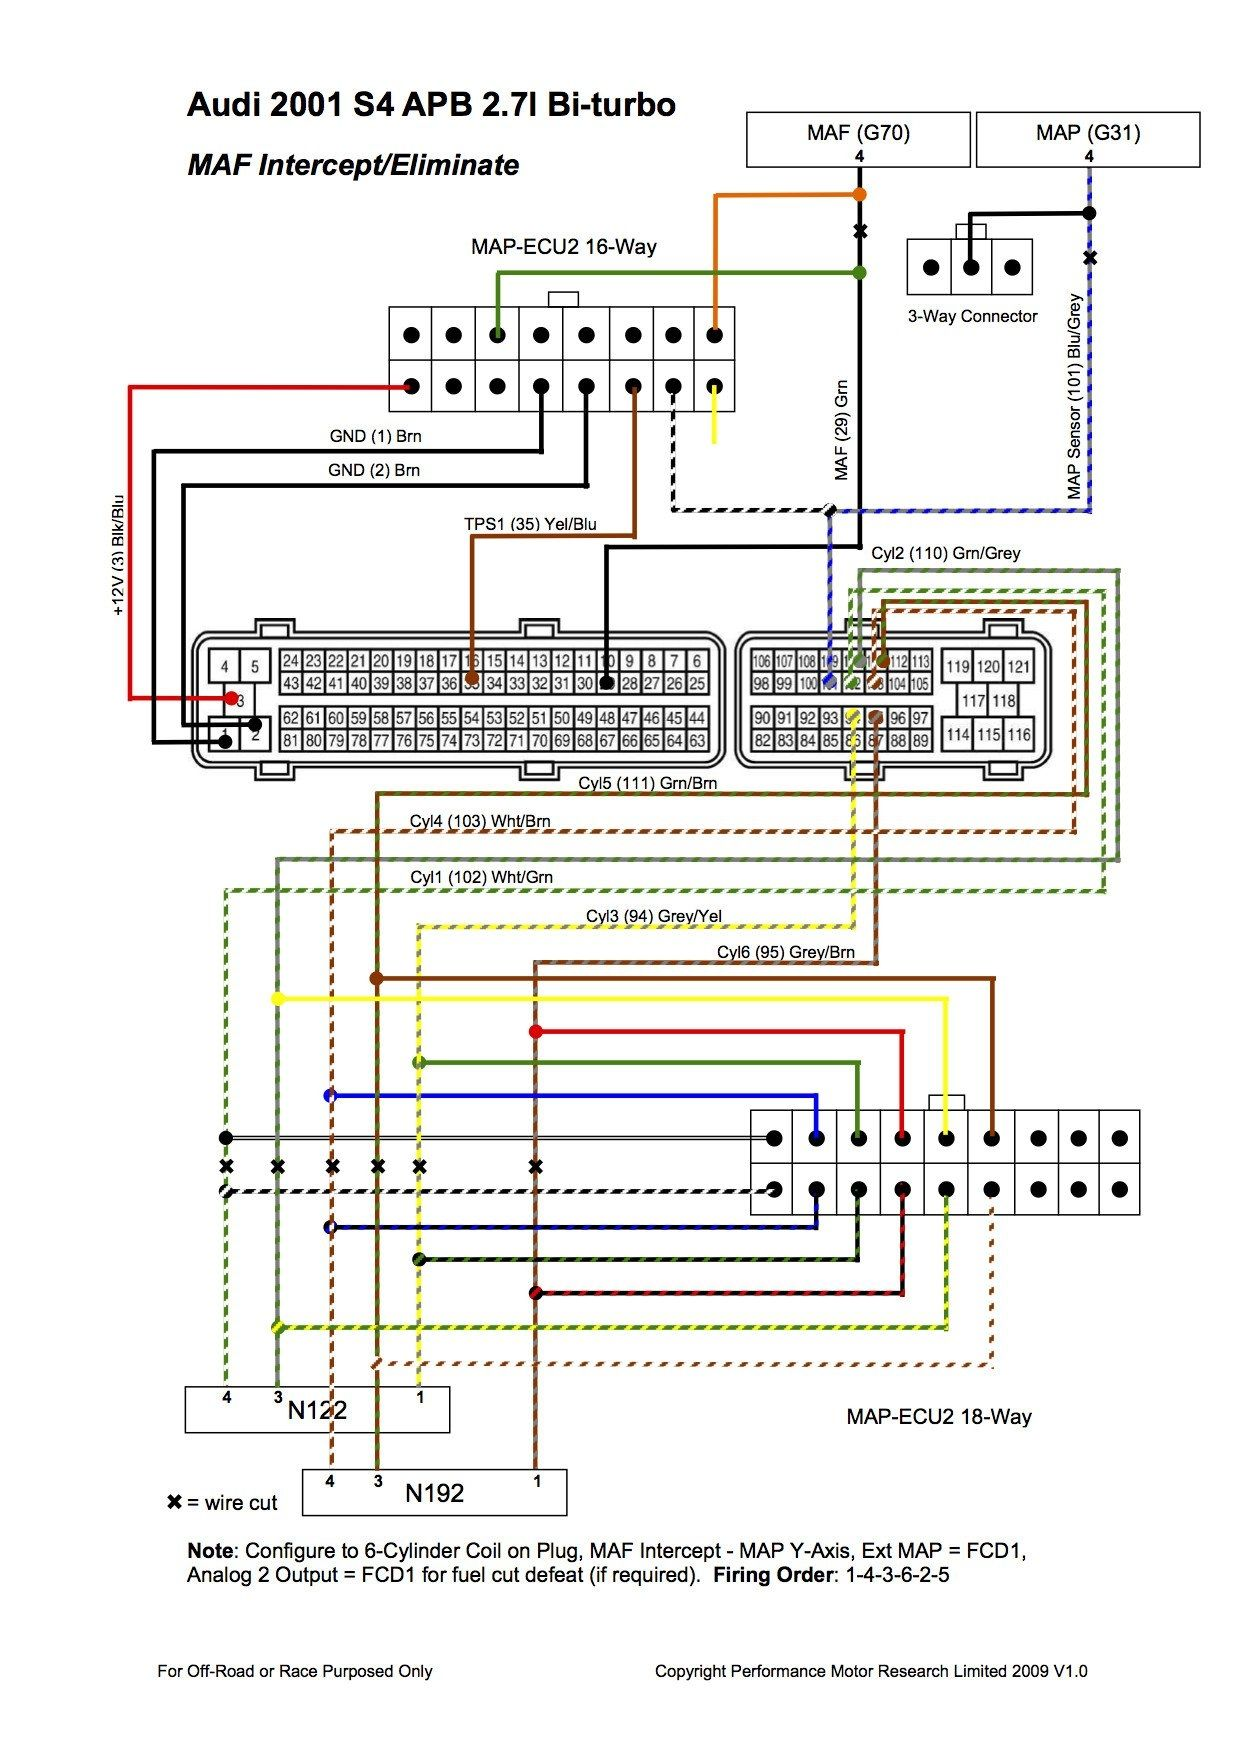 Toyota Corolla Engine Wiring Diagram | Wiring Diagram on corolla brake diagram, corolla toyota, corolla exhaust diagram, corolla air conditioning diagram, corolla turn signal wiring, corolla engine diagram, corolla wheels, corolla headlight bulb replacement, corolla suspension diagram, corolla belt diagram, corolla parts diagram, corolla steering diagram, corolla fuse diagram, corolla shock absorber, corolla transmission diagram,